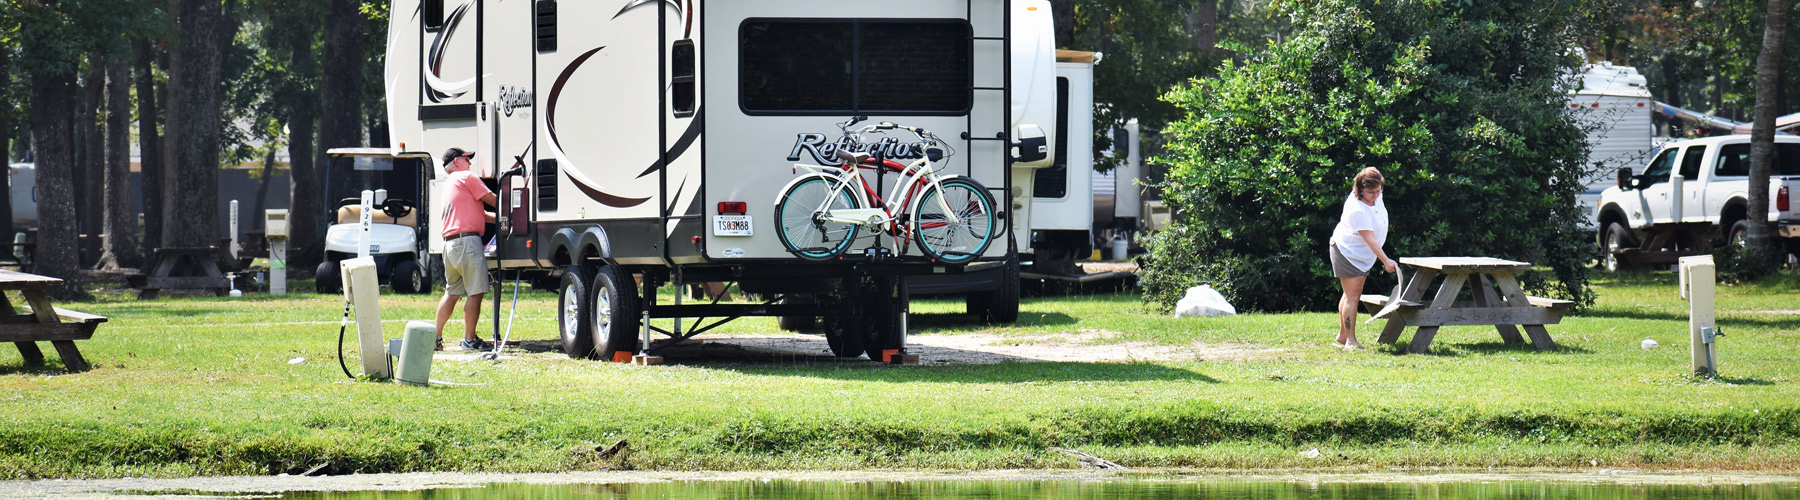 Campsite Rental Policies